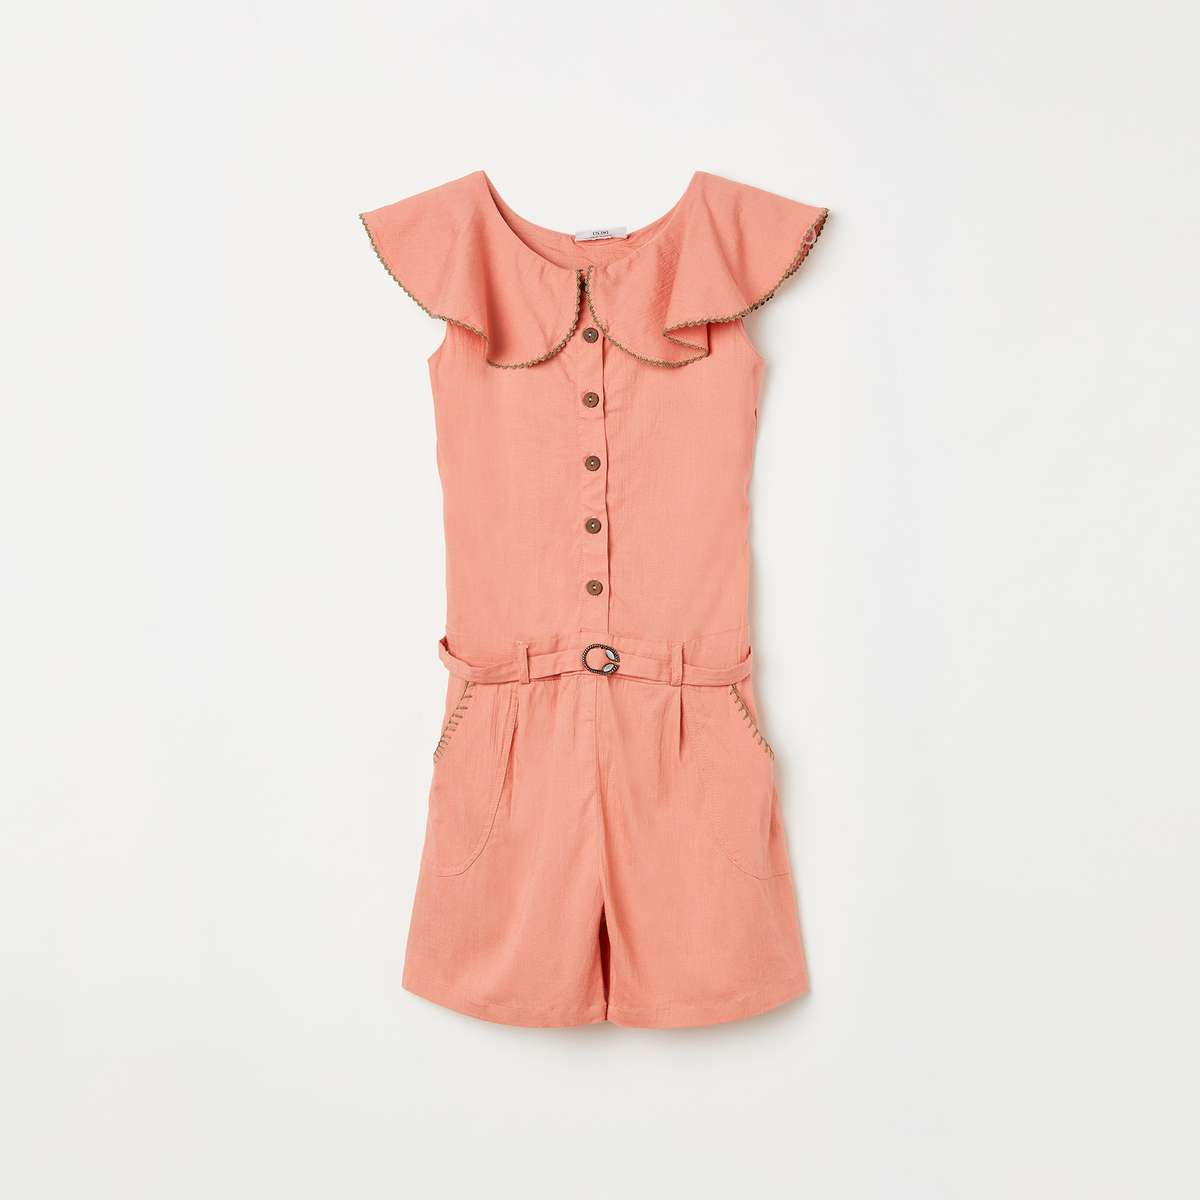 PEPPERMINT Girls Solid Playsuit with Ruffle Detail